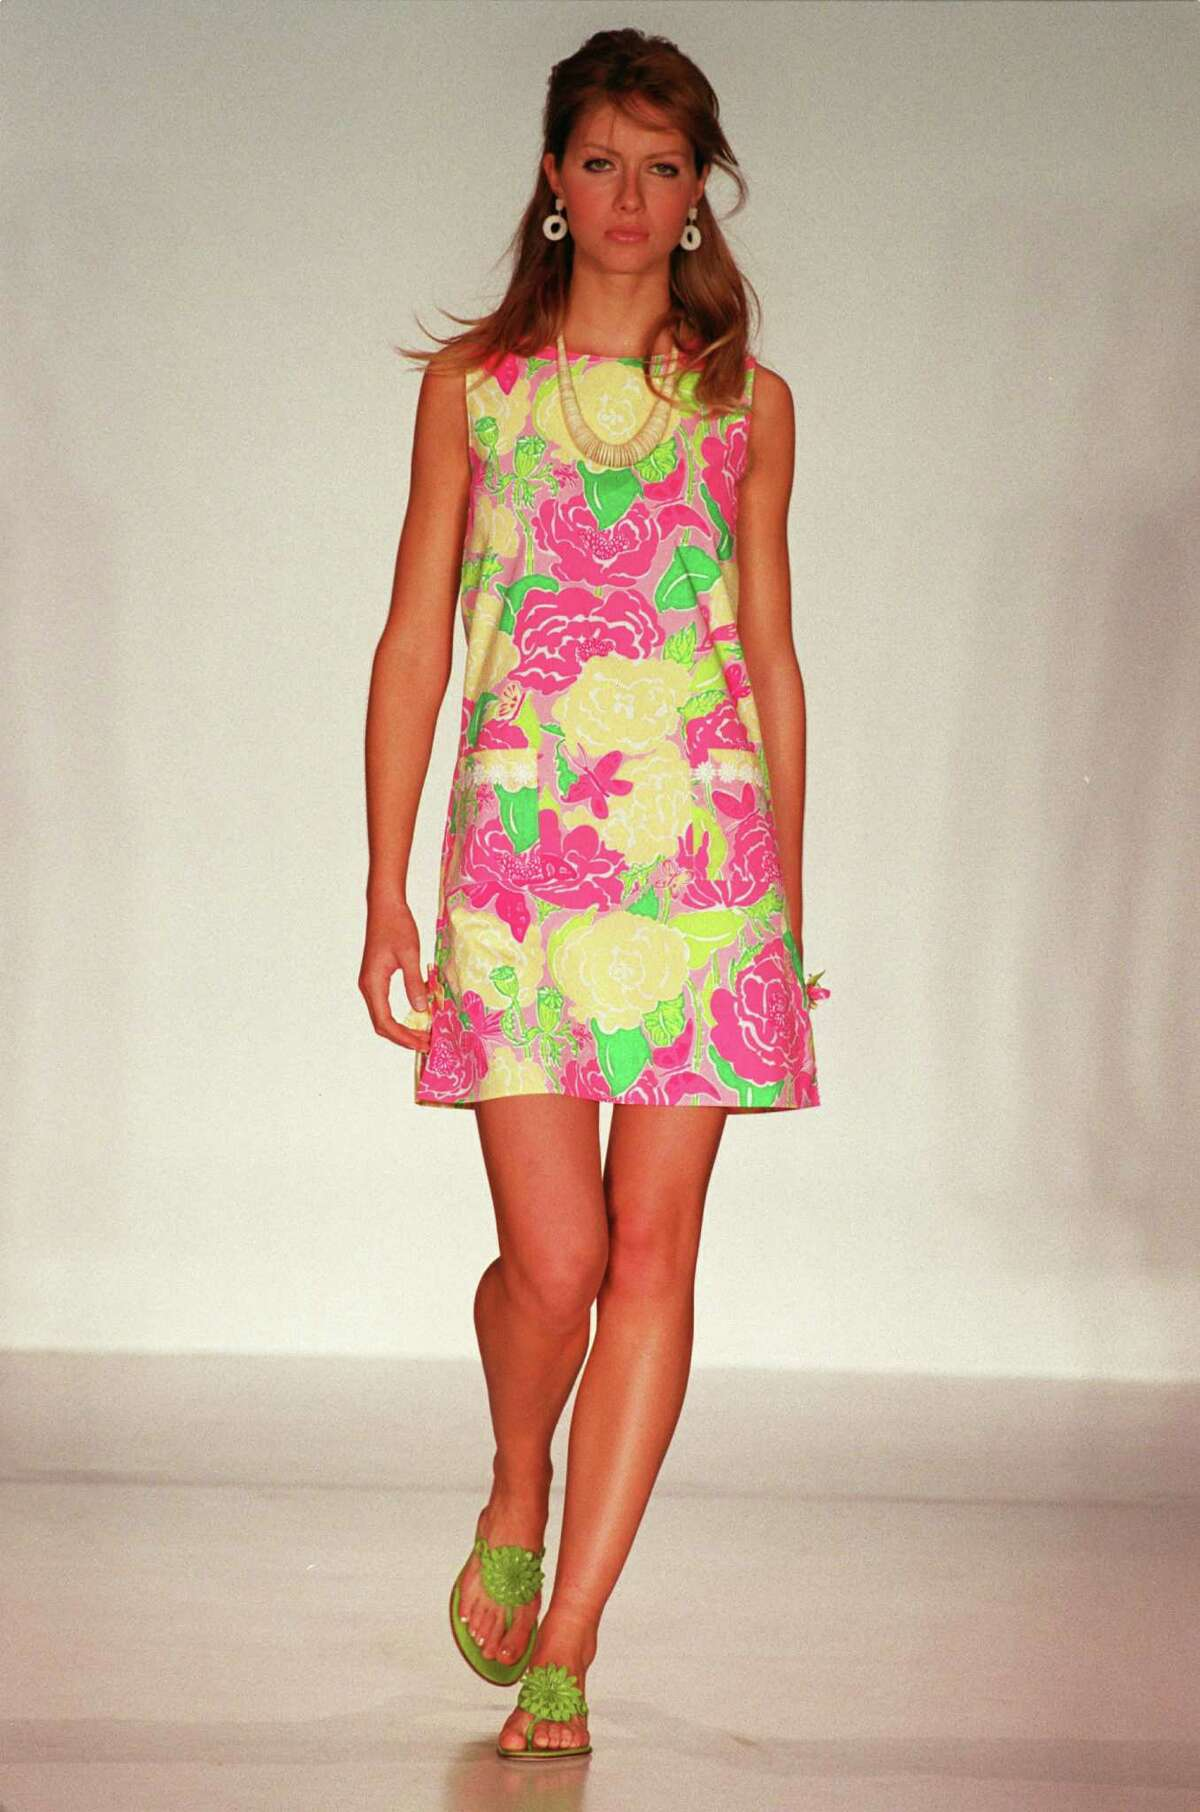 """09/2002 (5473) - New York - fashion by Lilly Pulitzer. HOUCHRON CAPTION (02/15/2003): OK, Lilly lovers, we know you're out there. We know about your penchant for brightly colored, beachy shift dresses. And we're not surprised by the preppy, coordinating ensembles you make your kids wear in family portraits. Now, there's a place for devotees of Lilly Pulitzer's """"Palm Beach chic."""" Houston's only Lilly Pulitzer Signature Store, Principessa, has opened in the River Oaks Shopping Center. Principessa, 1965 W. Gray, is packed with colorful dresses and the coordinating kiddy ensembles for which Pulitzer is known. The store also offers shoes, sandals, jewelry, handbags and swimwear. For information, access www.principessausa.com or call 713-807-0707. -- LIZ EMBRY."""